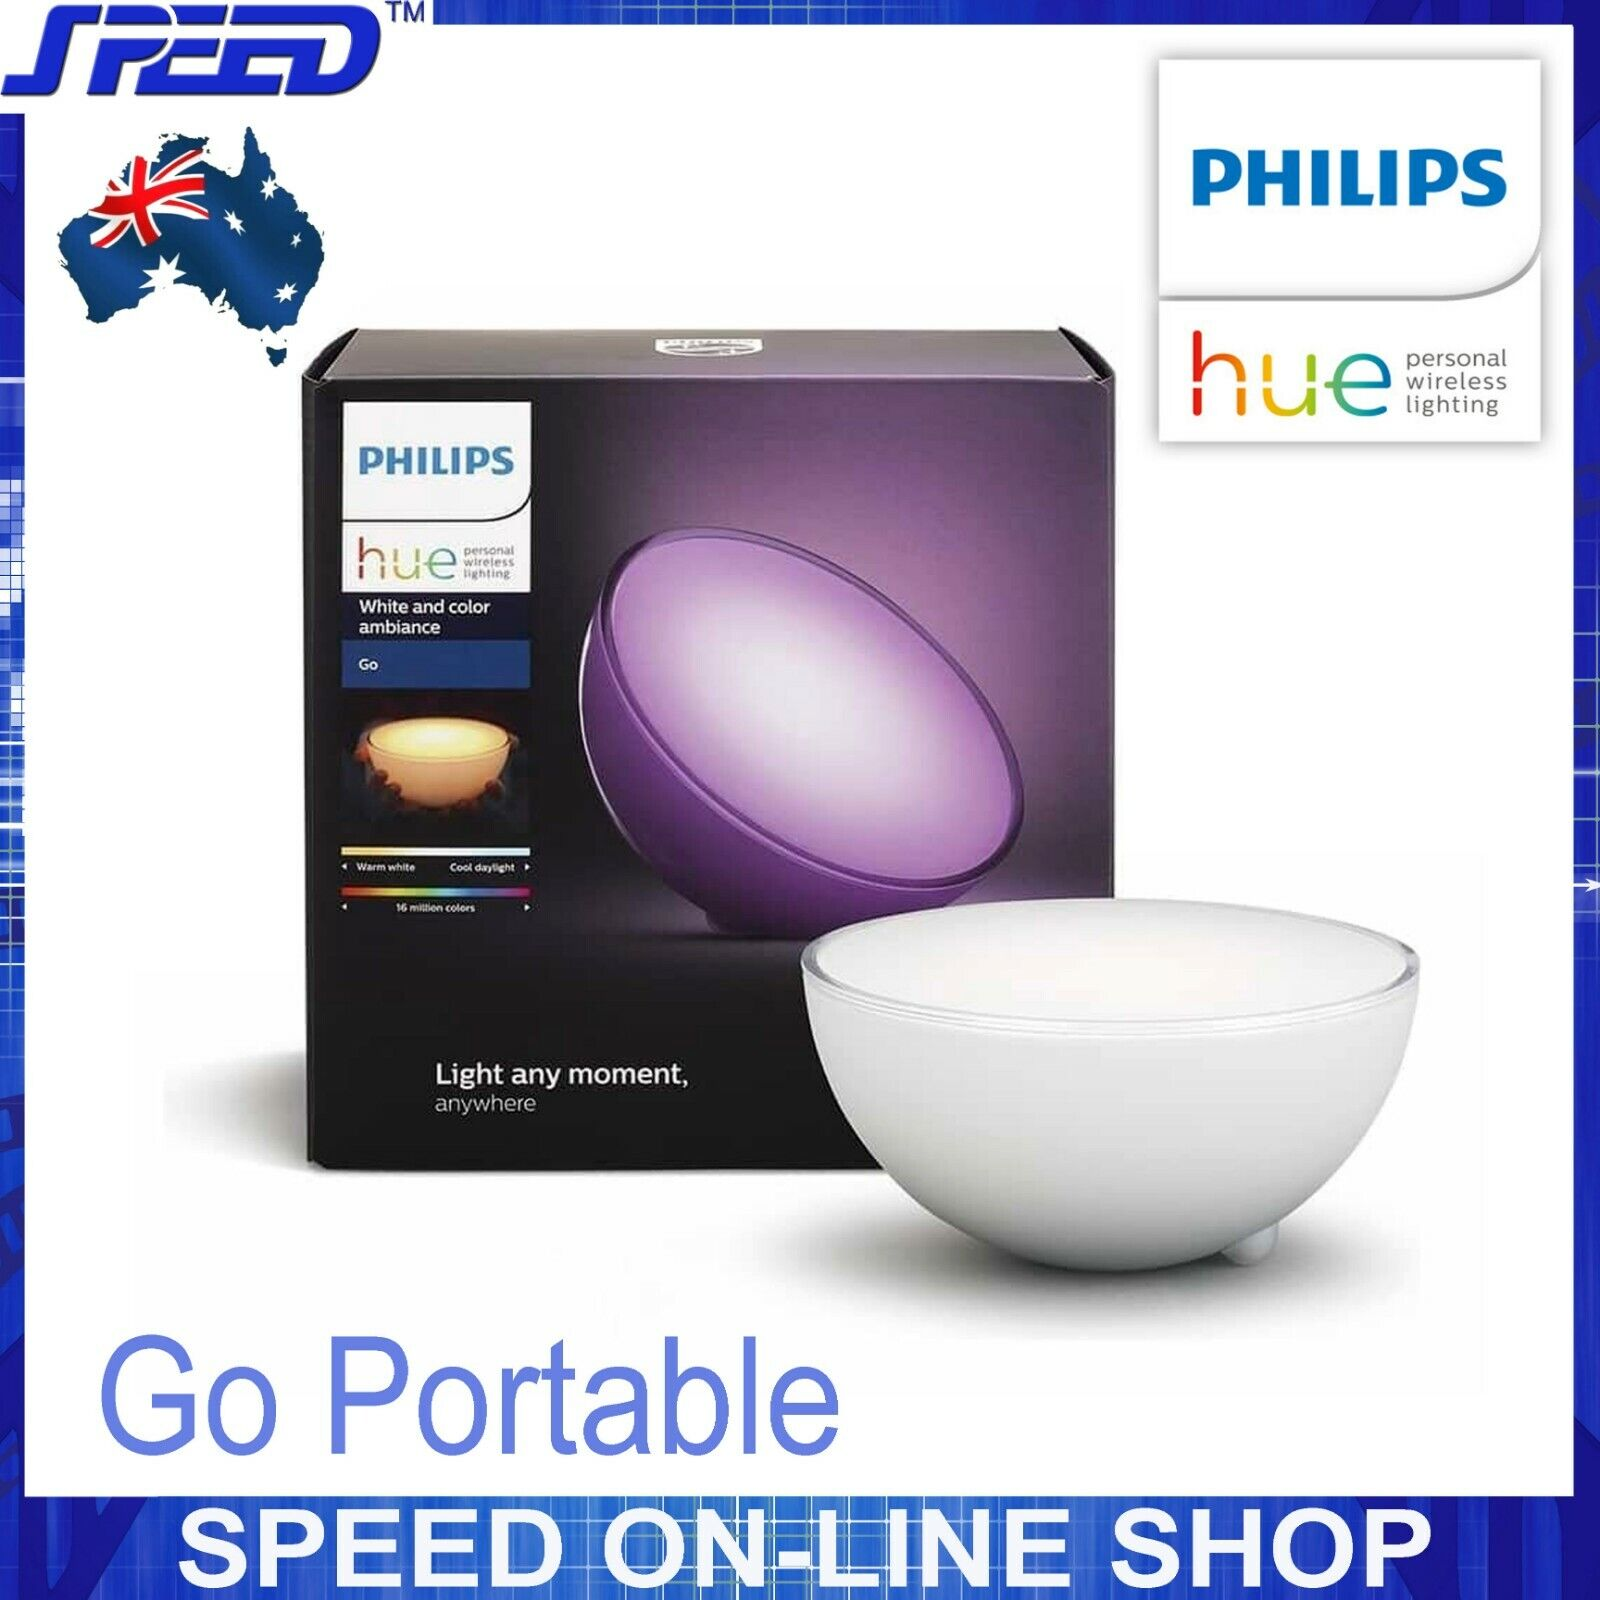 PHILIPS Hue - Go Portable - Weiß and Farbe Ambiance - 16 Million Farbes LED